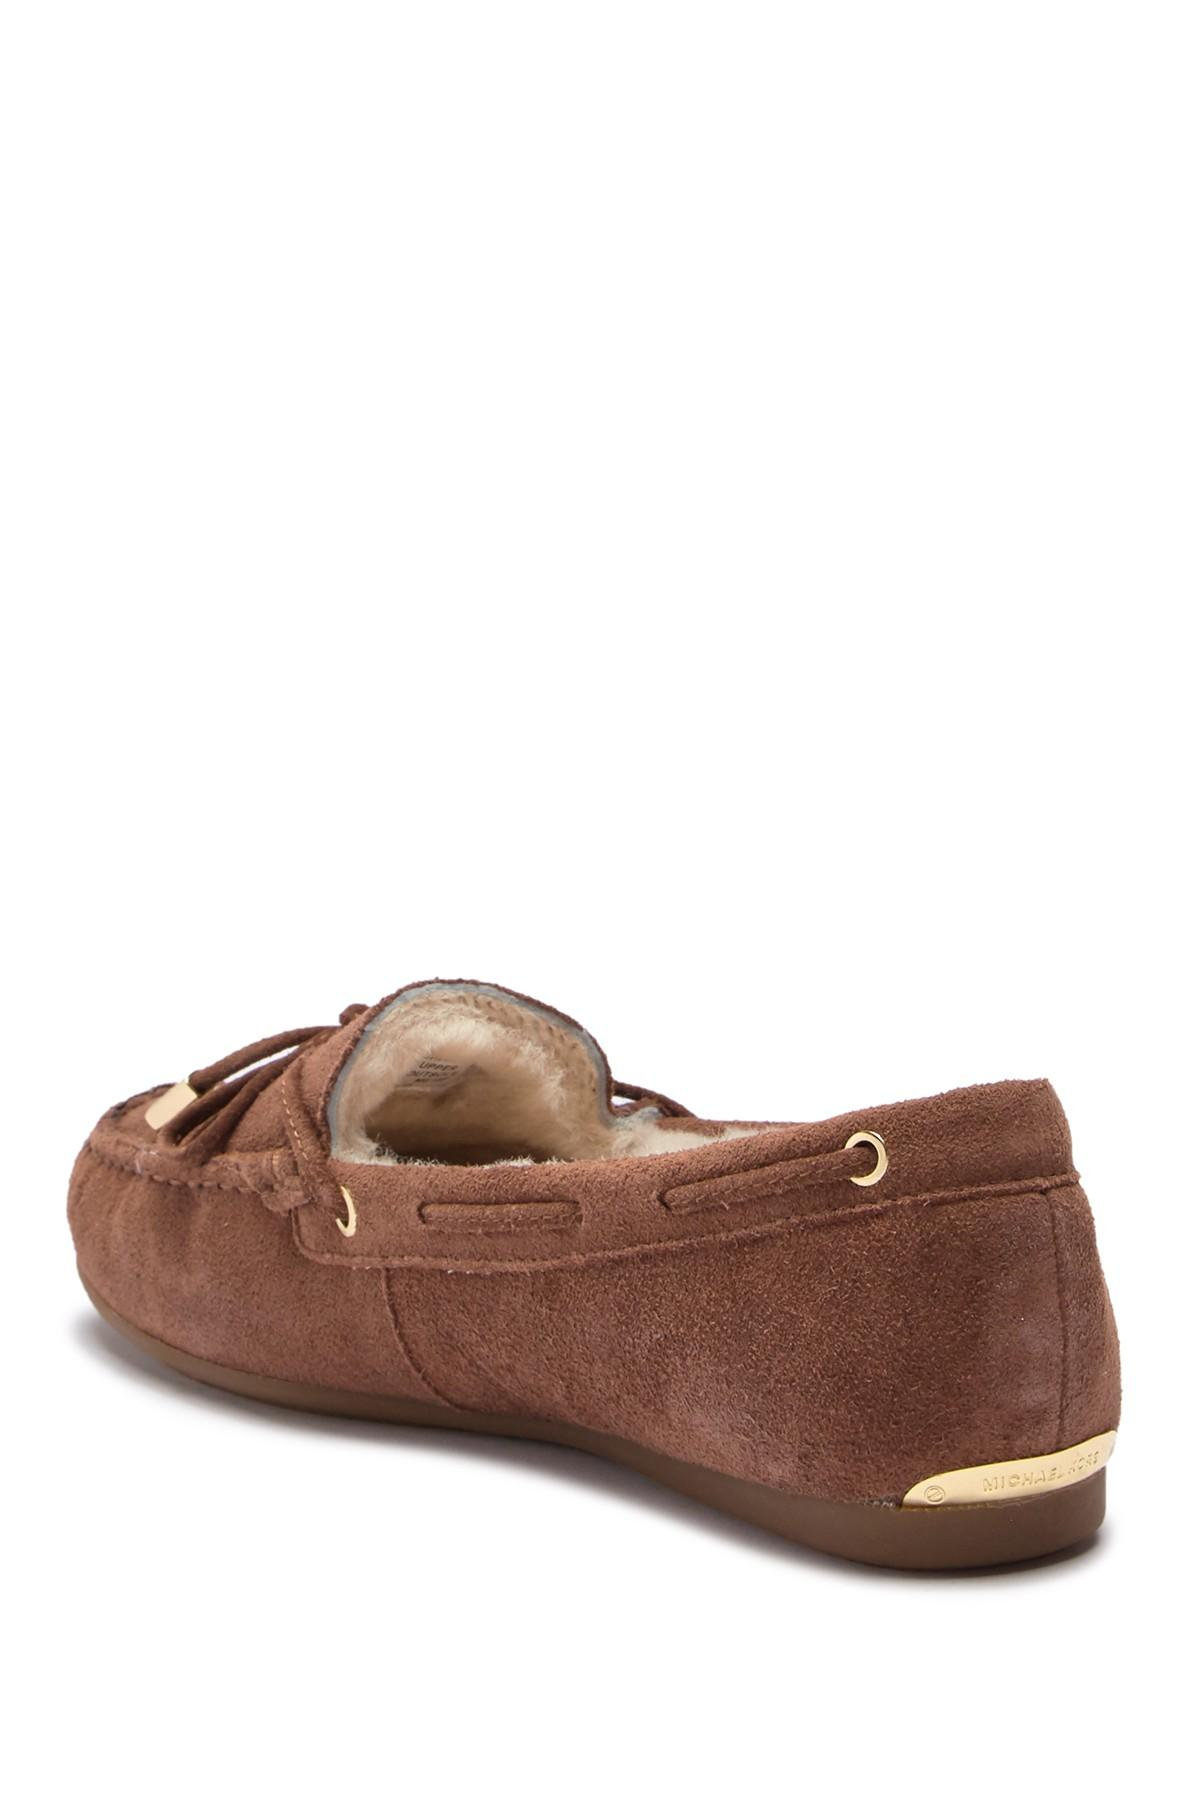 1ebdc25a91ca3 MICHAEL Michael Kors - Brown Genuine Shearling Lined Sutton Moccasin -  Lyst. View fullscreen